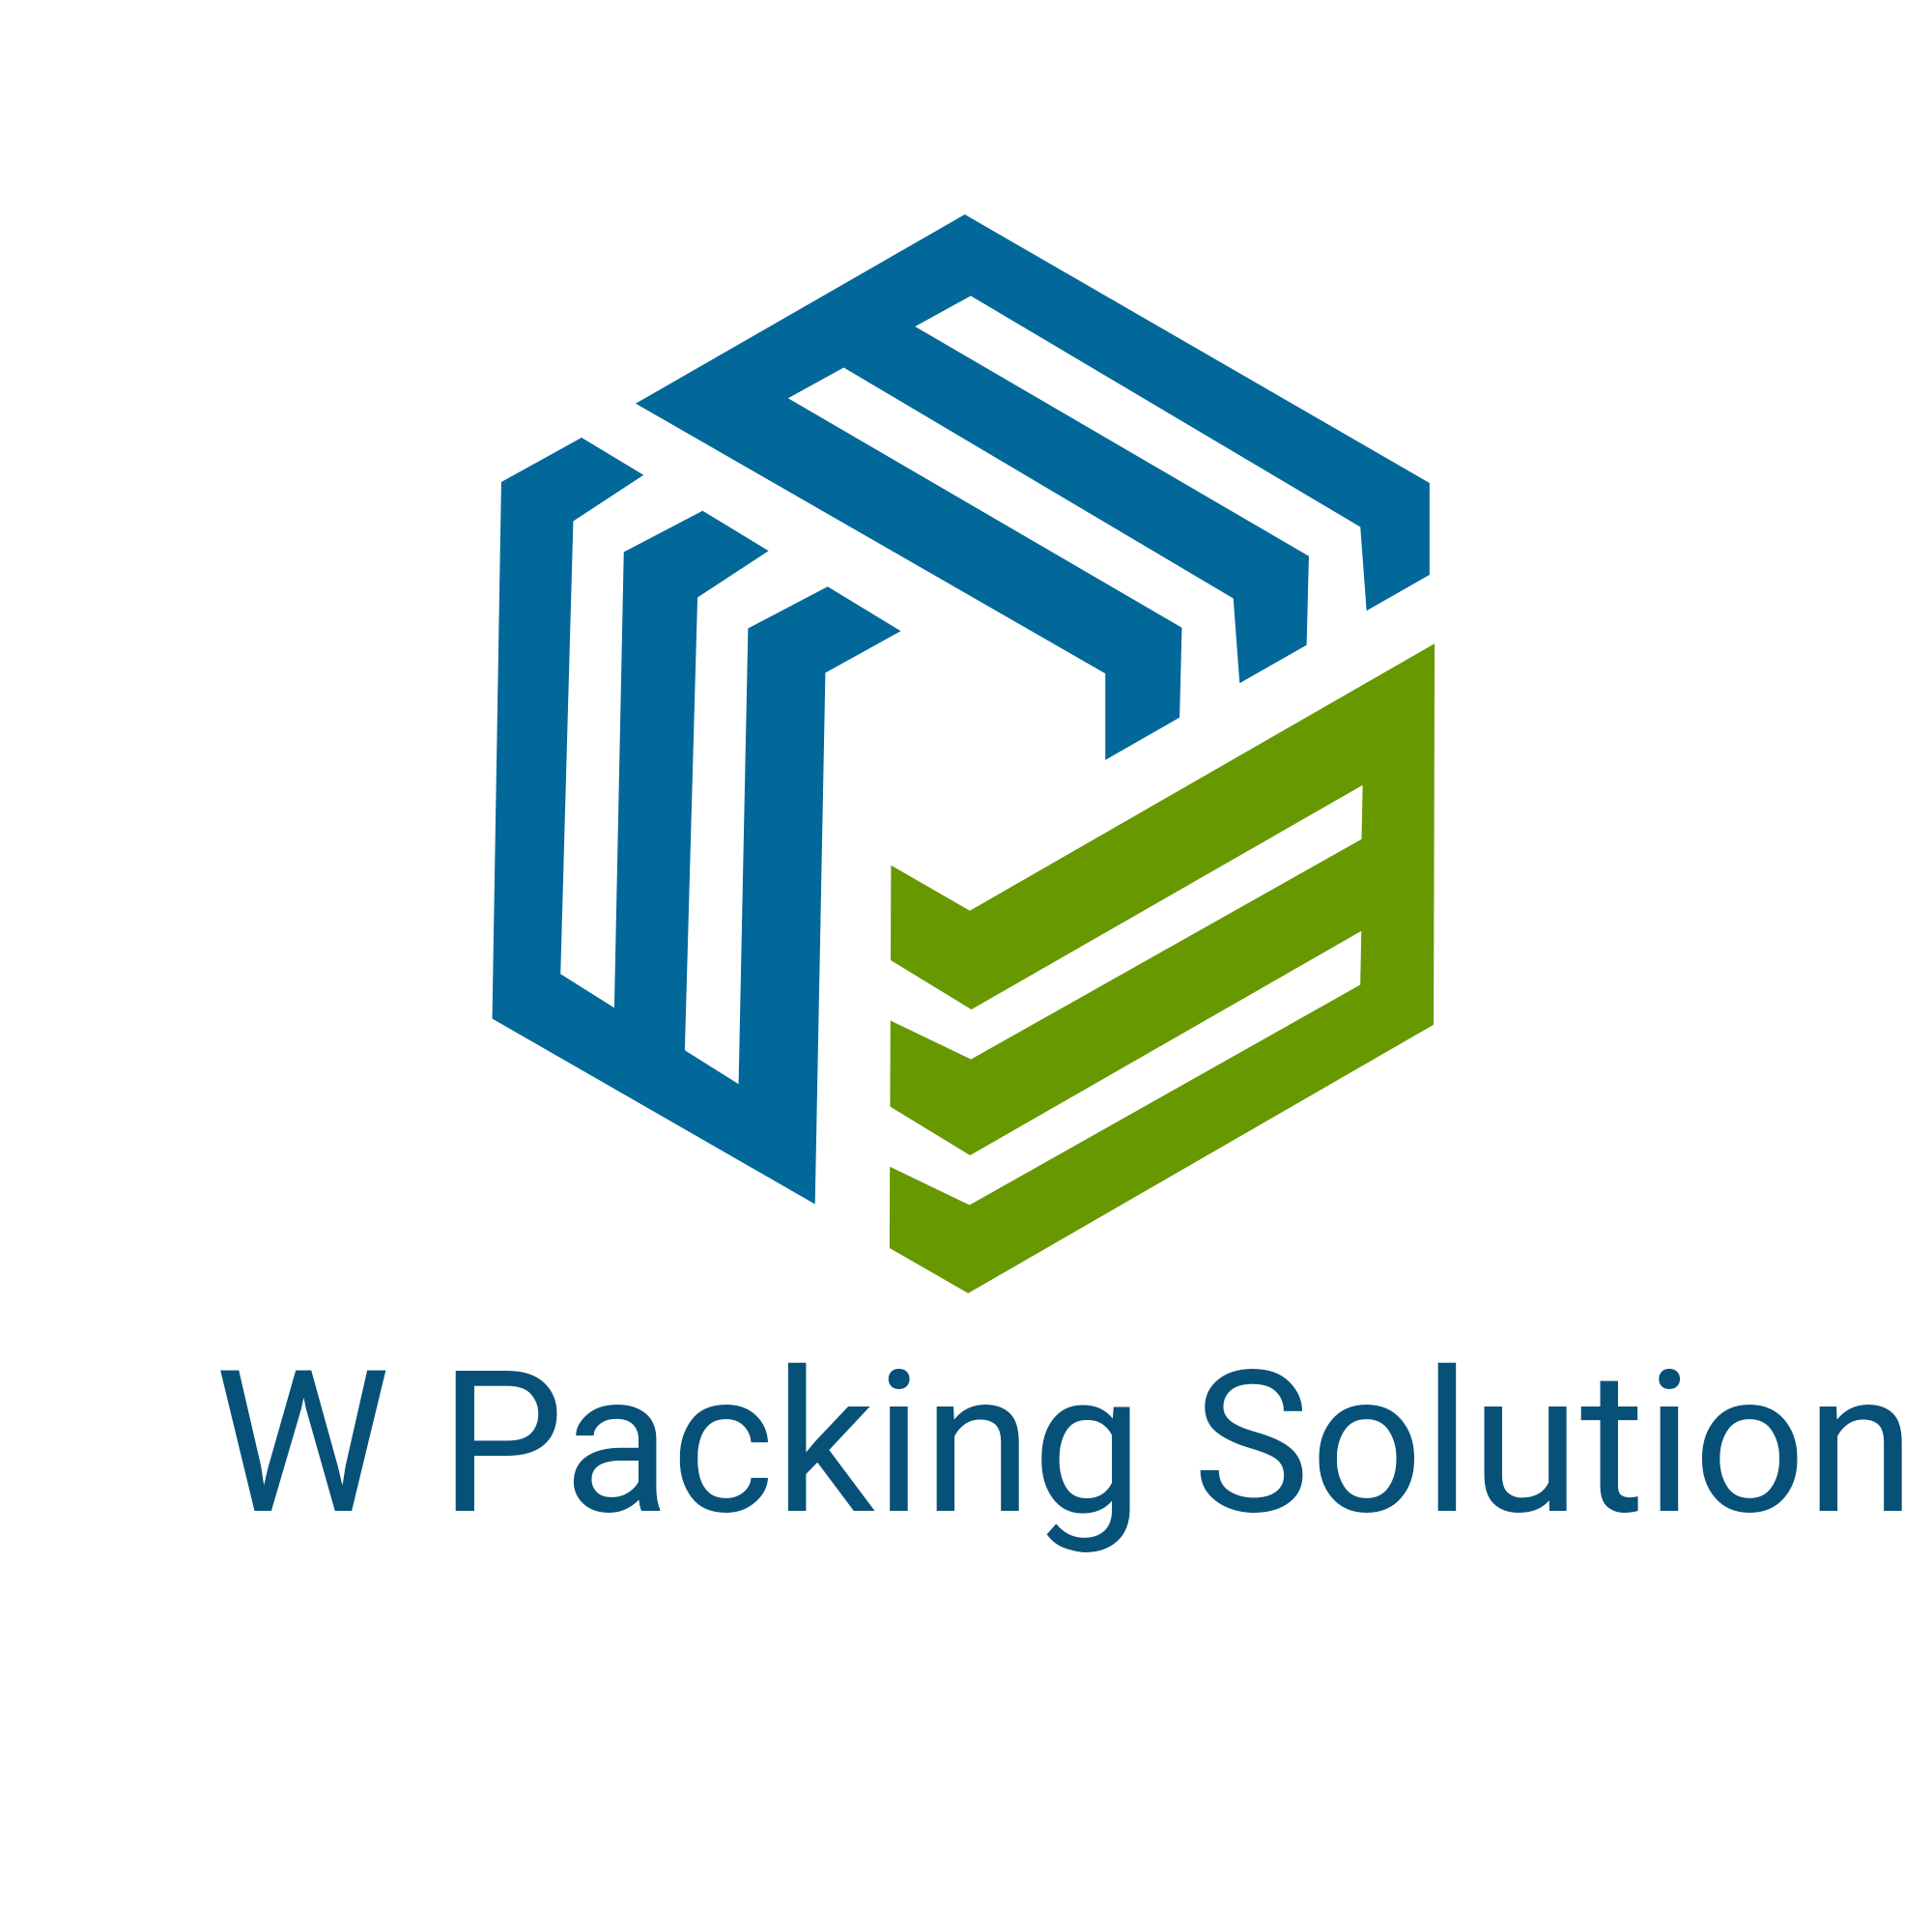 W Packing Solution Logo